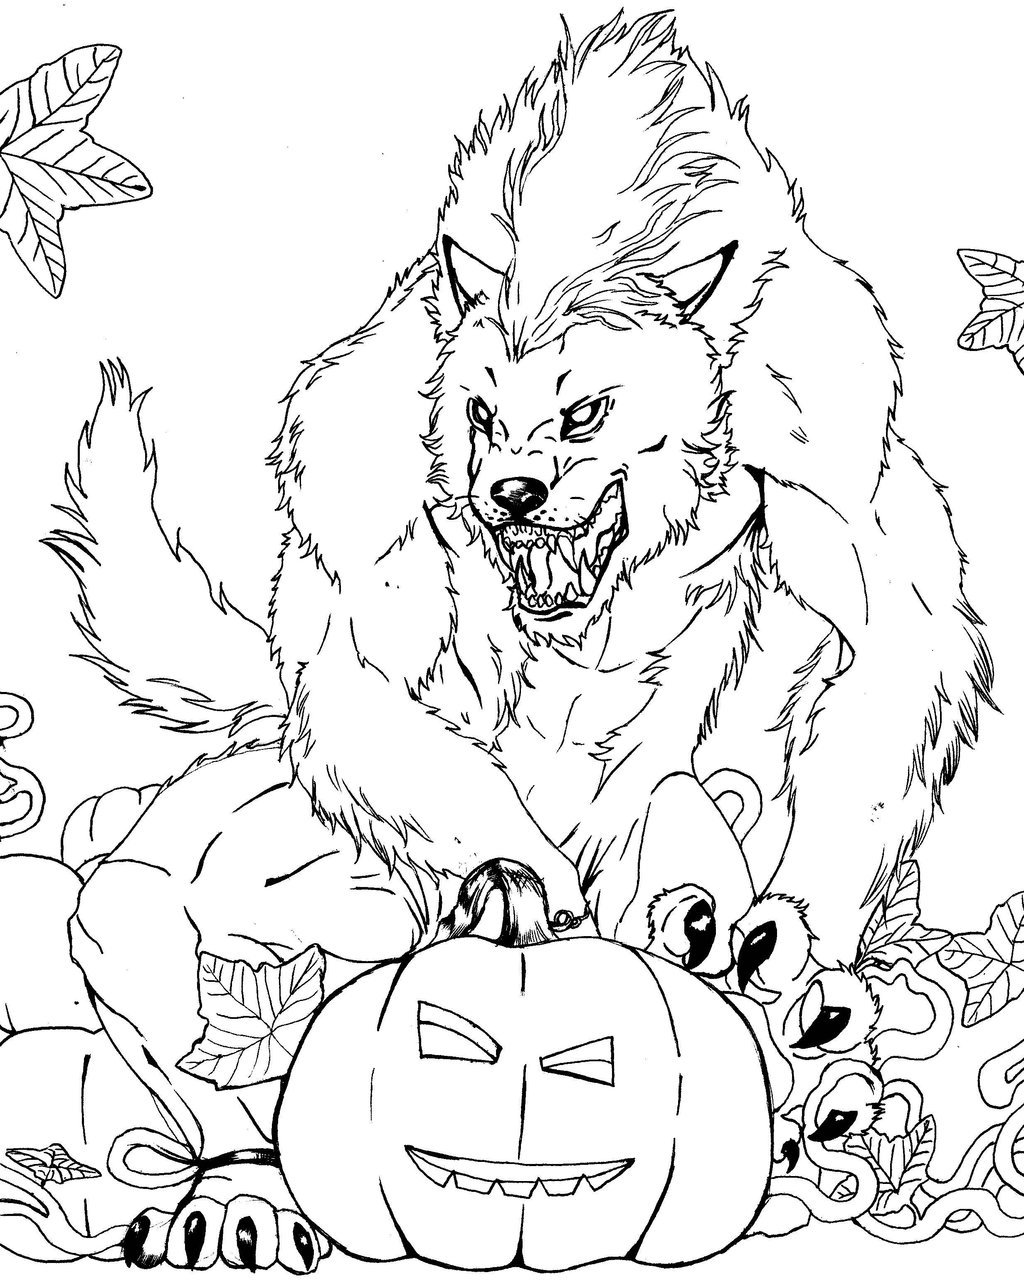 werewolf coloring pages printable werewolf coloring pages printable at getdrawings free werewolf pages coloring printable